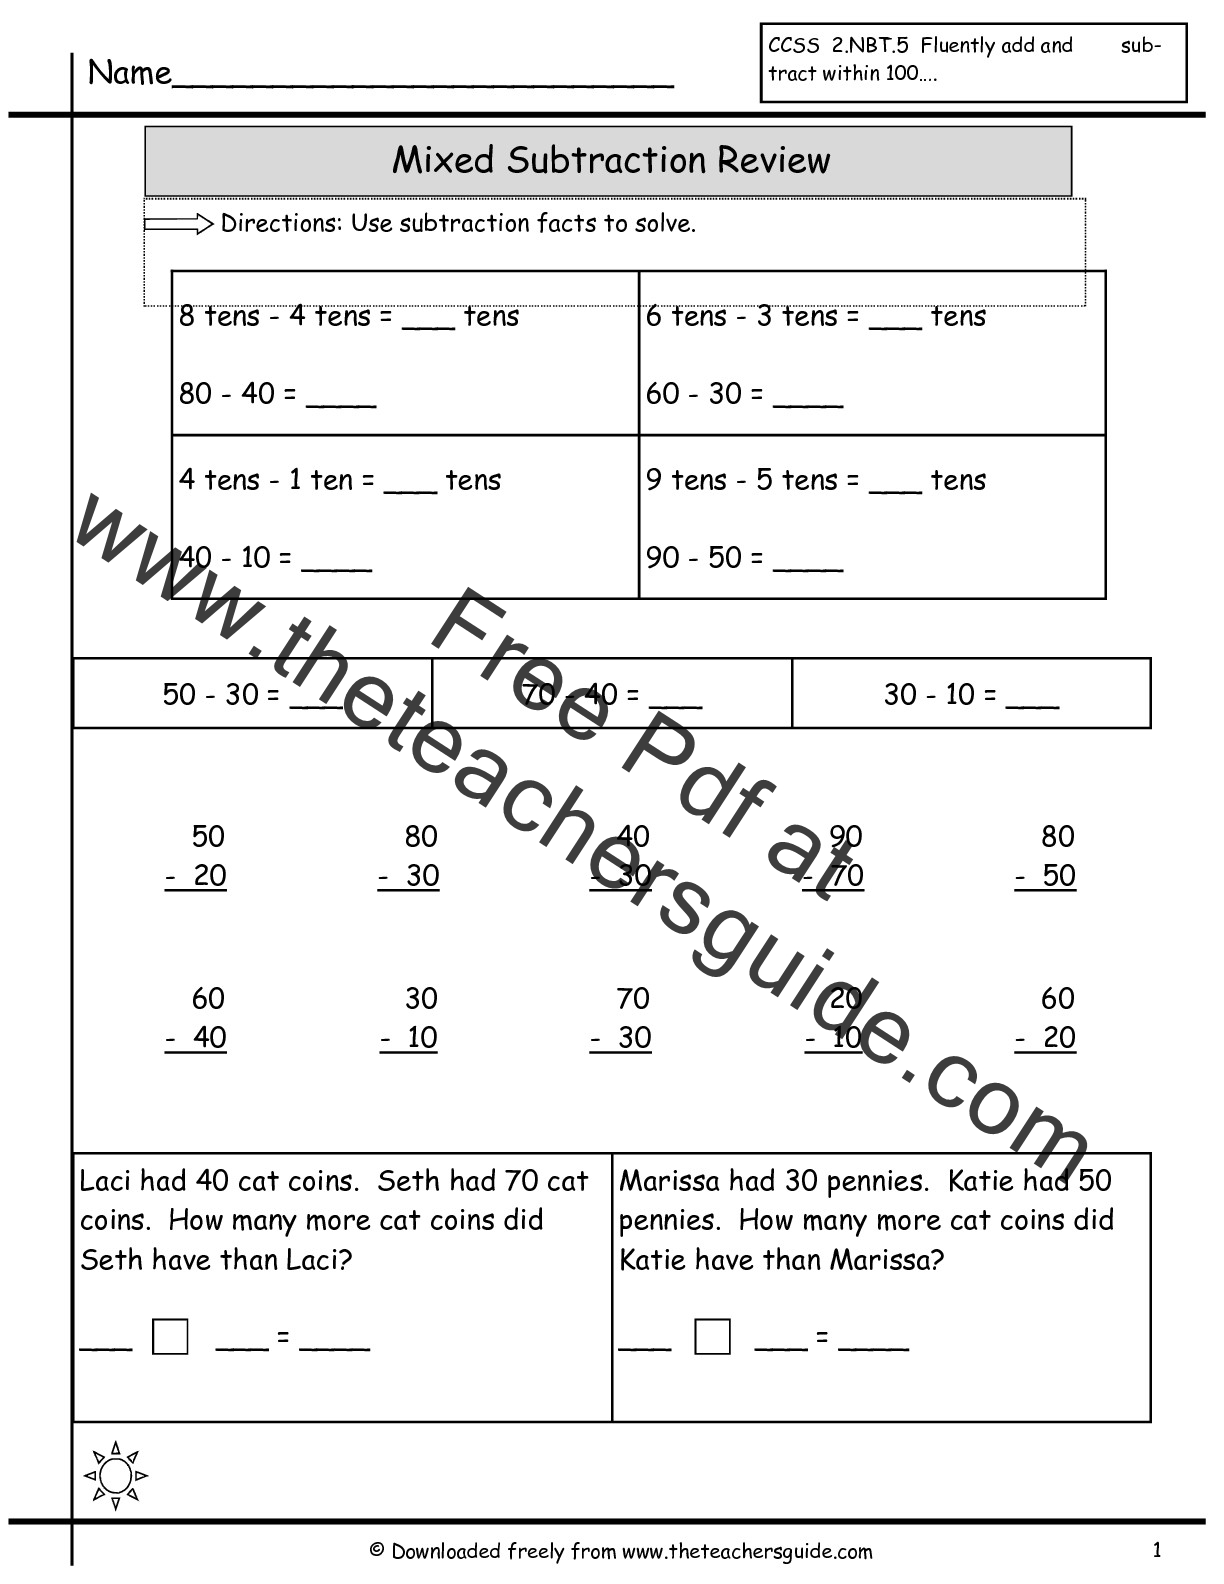 math worksheet : single digit addition worksheets from the teacher s guide : Two Digit Subtraction Worksheet